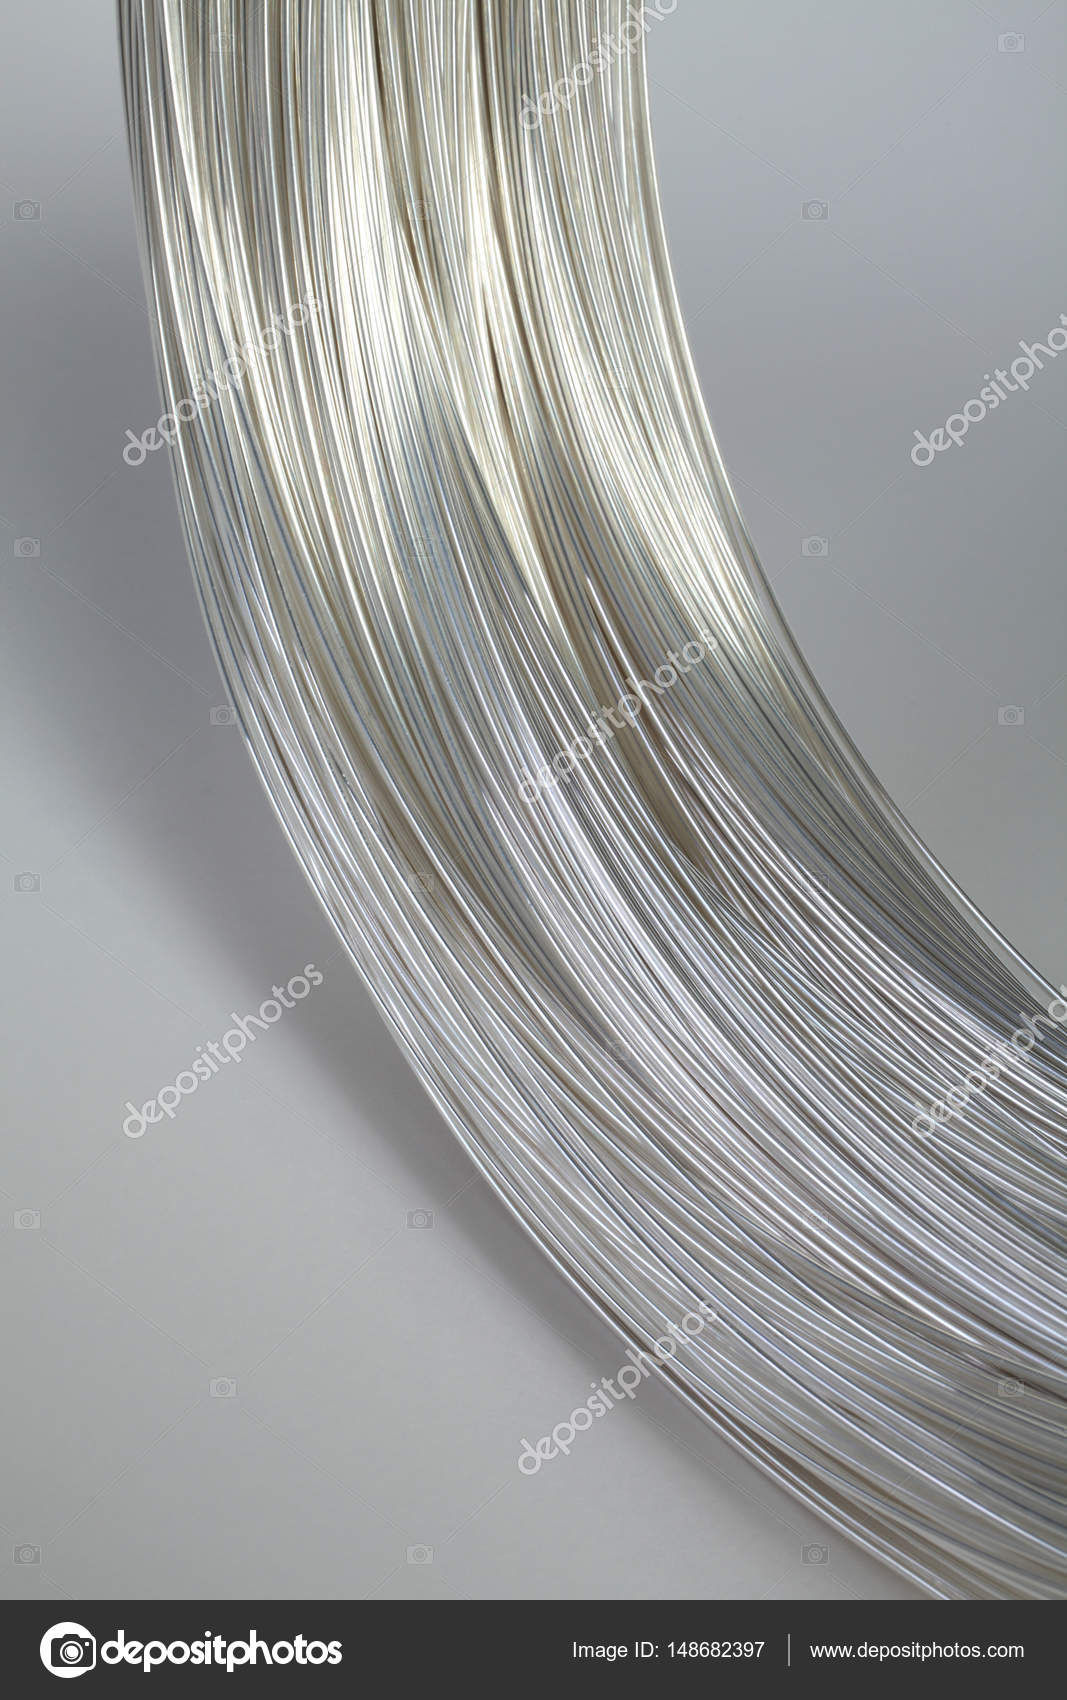 Wire made of platinum silver color for electronic and jewelry ...